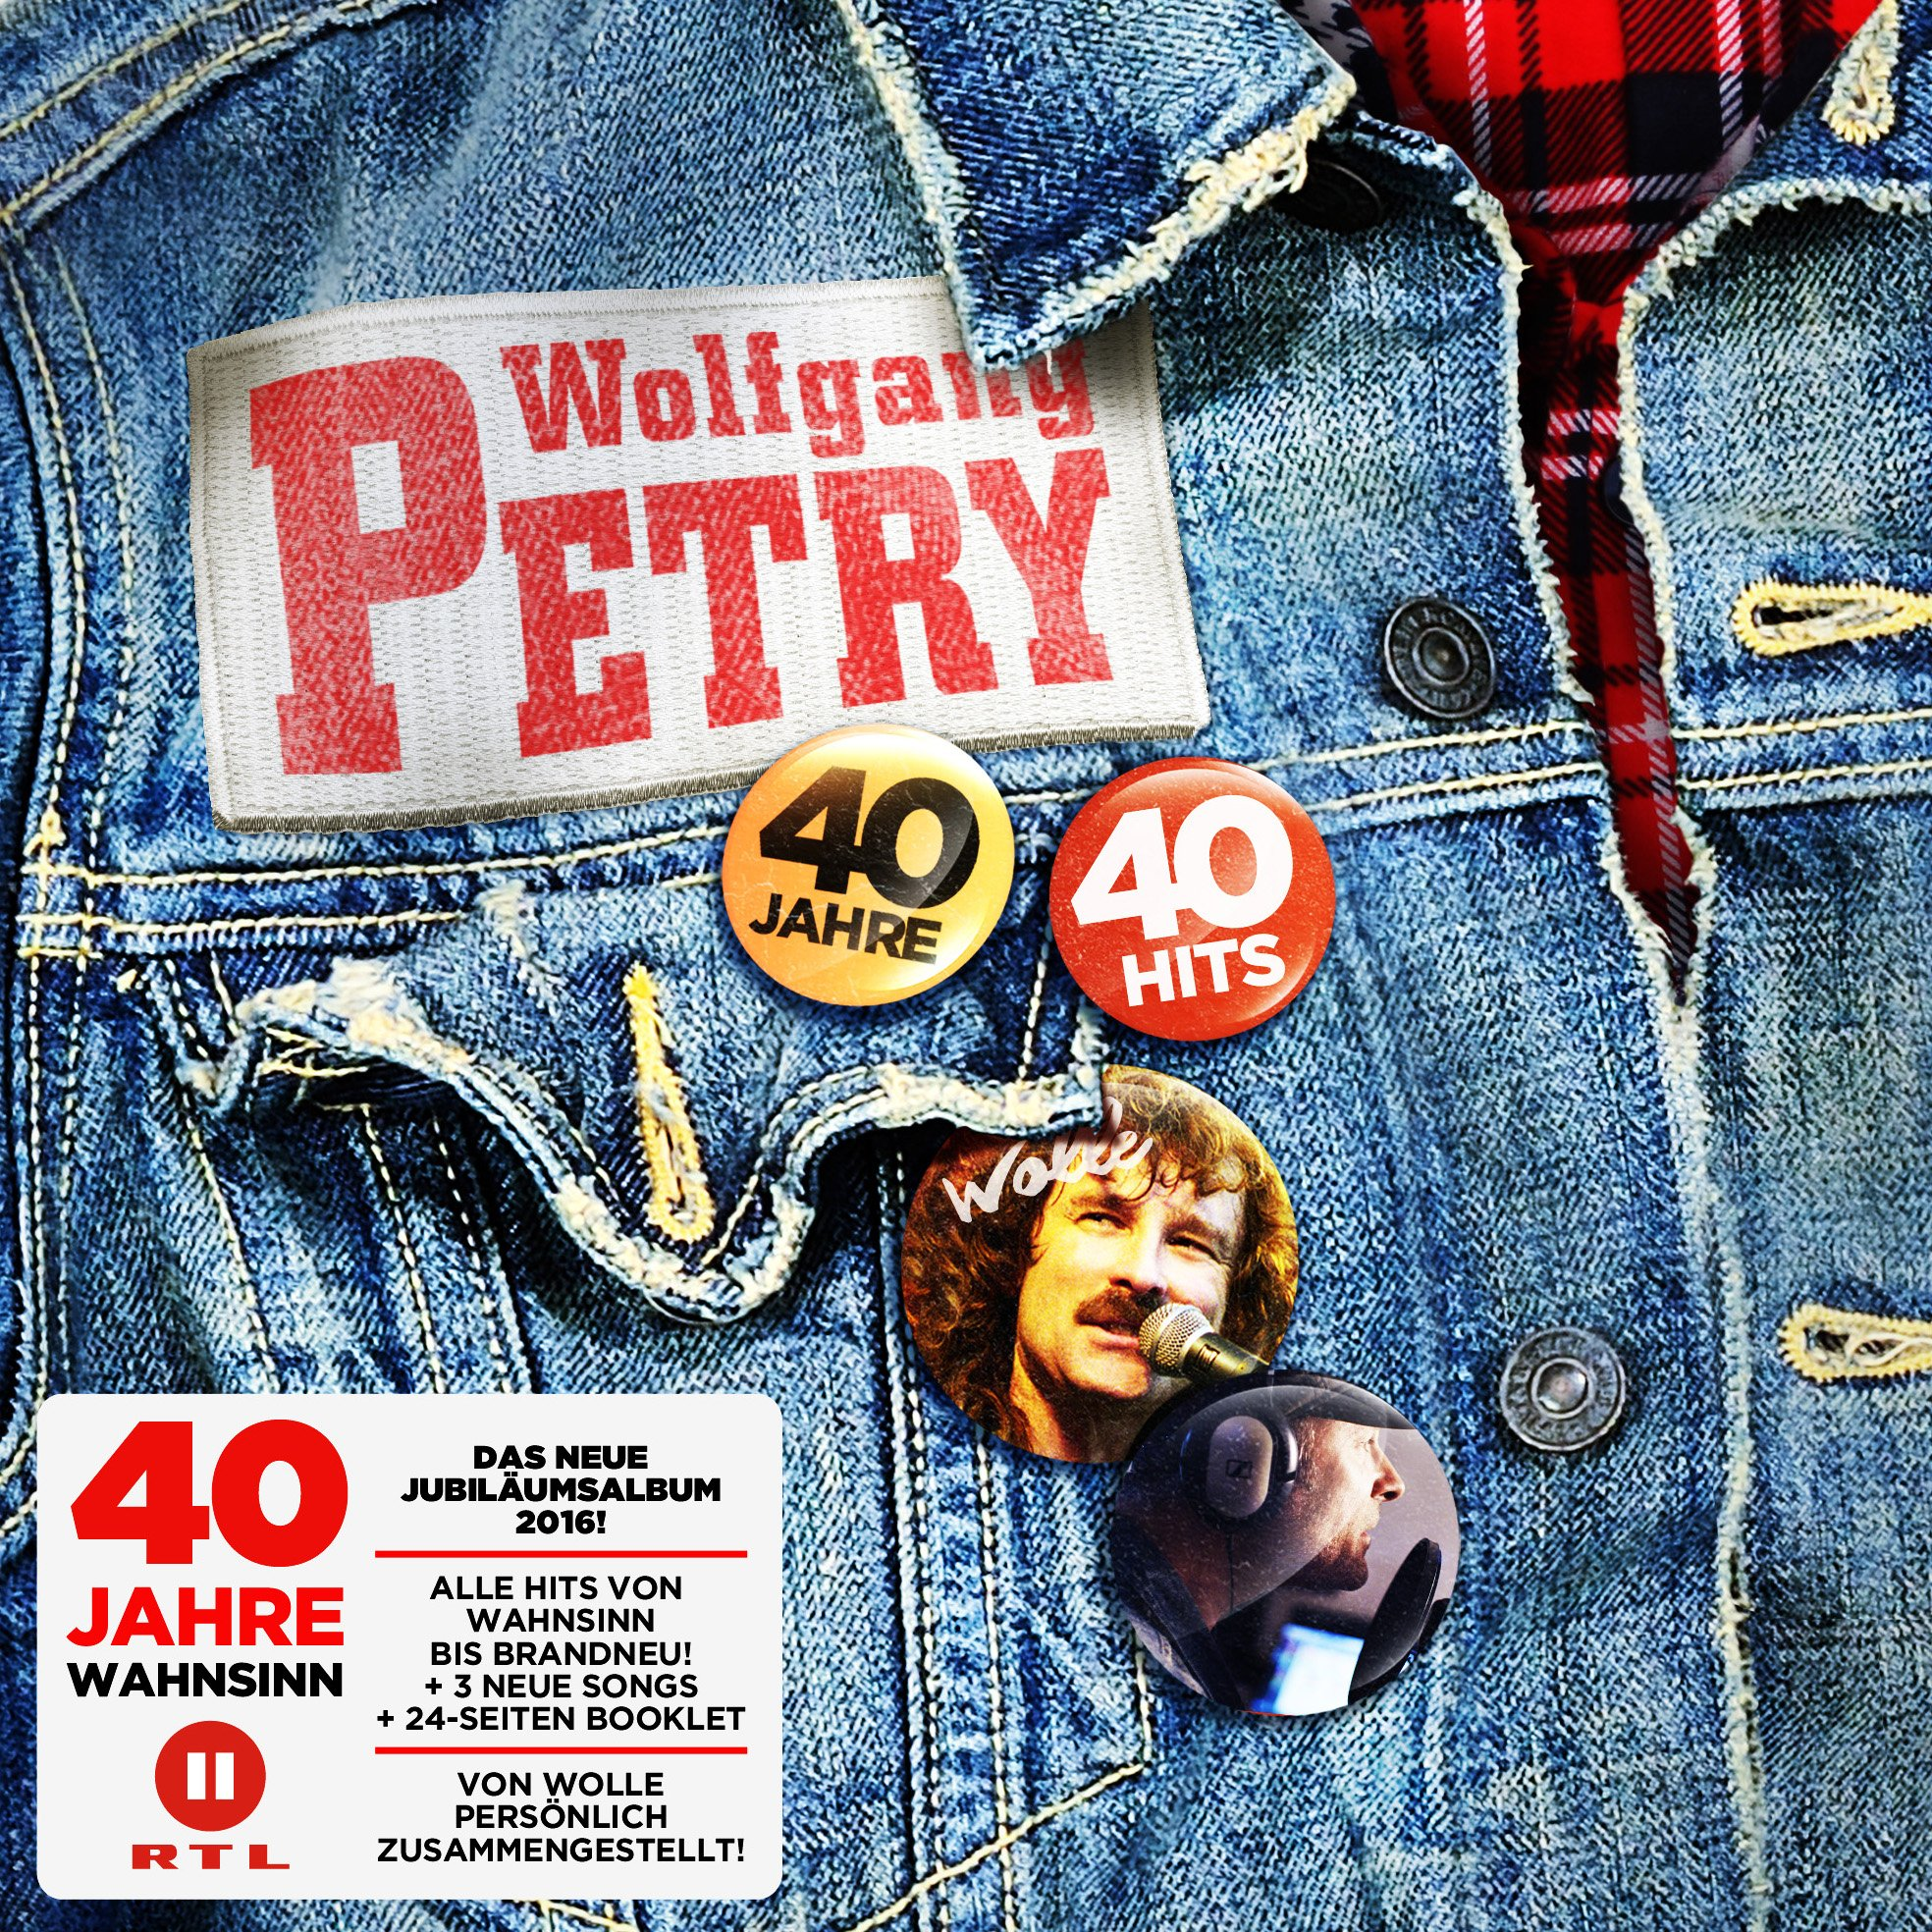 Wolfgang Petry-40 Jahre 40 Hits-DE-2CD-FLAC-2016-VOLDiES Download